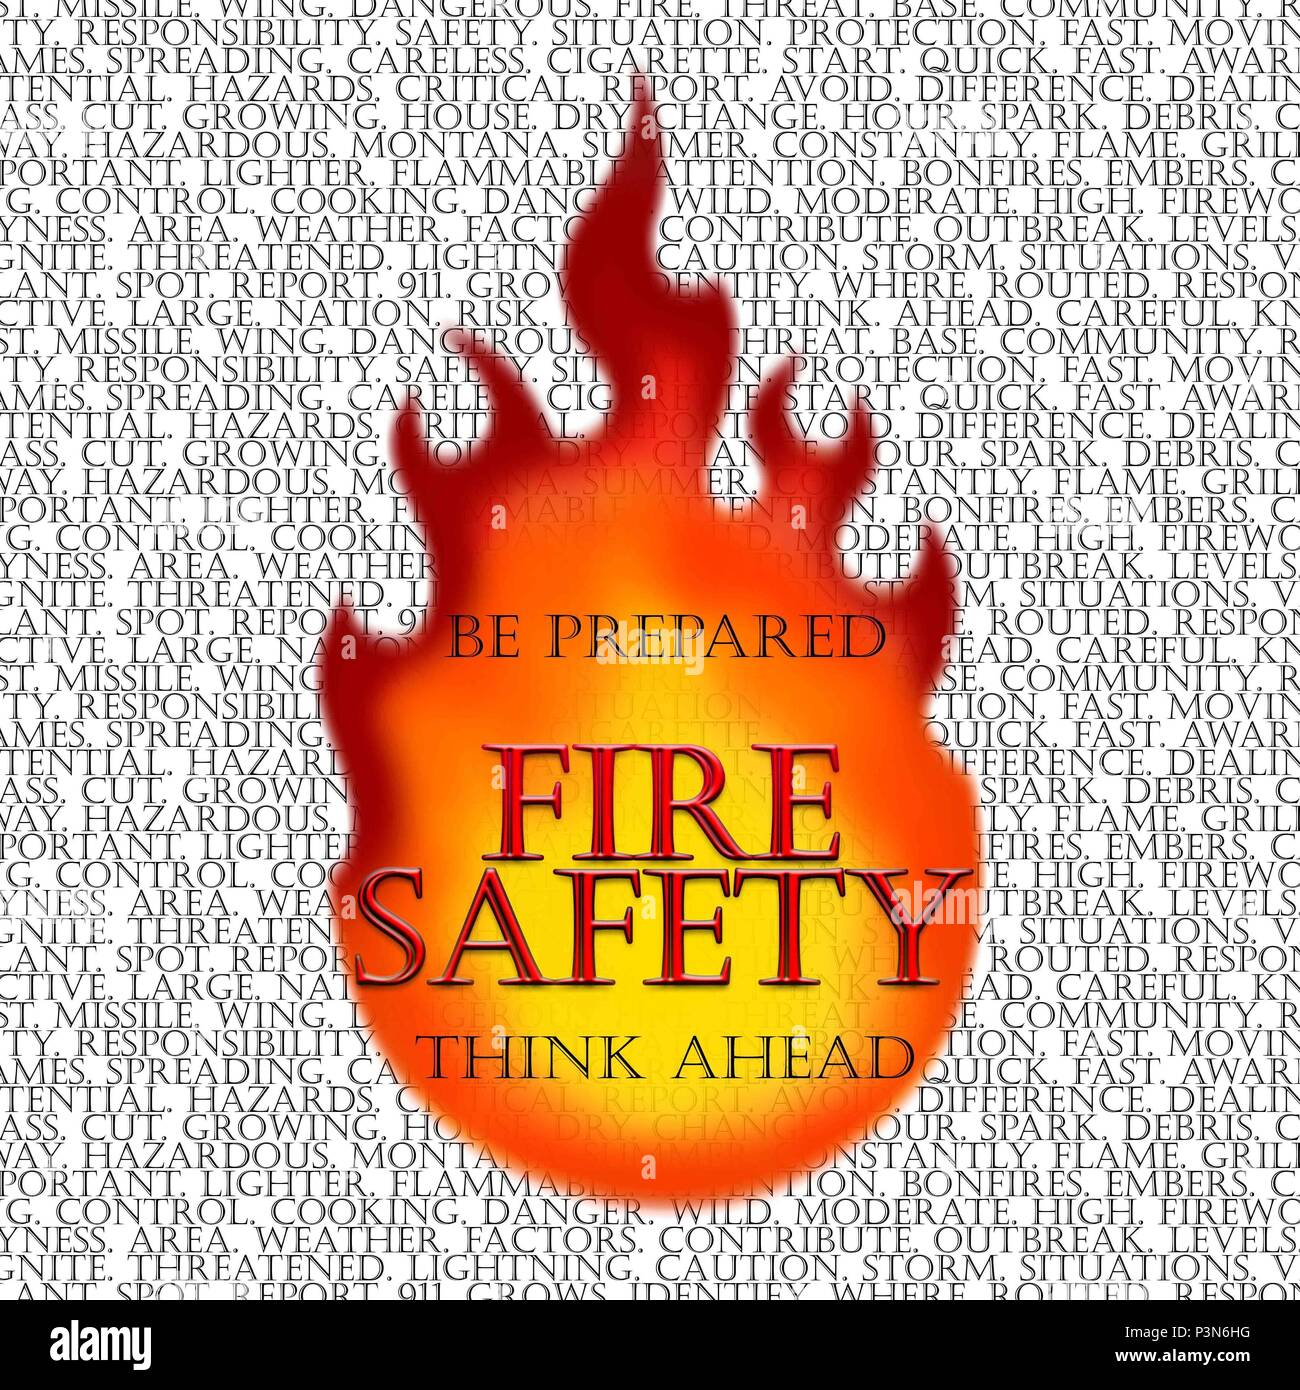 Dangerous fires being a threat to both the 341st Missile Wing and local community is a reality. Half of the base's area of responsibility is a fire safety situation. Fast moving flames don't discriminate between base property and the local community. Being aware of potential hazards both on base and off base is critical. (U.S. Air Force graphic/Airman 1st Class Magen M. Reeves) Stock Photo